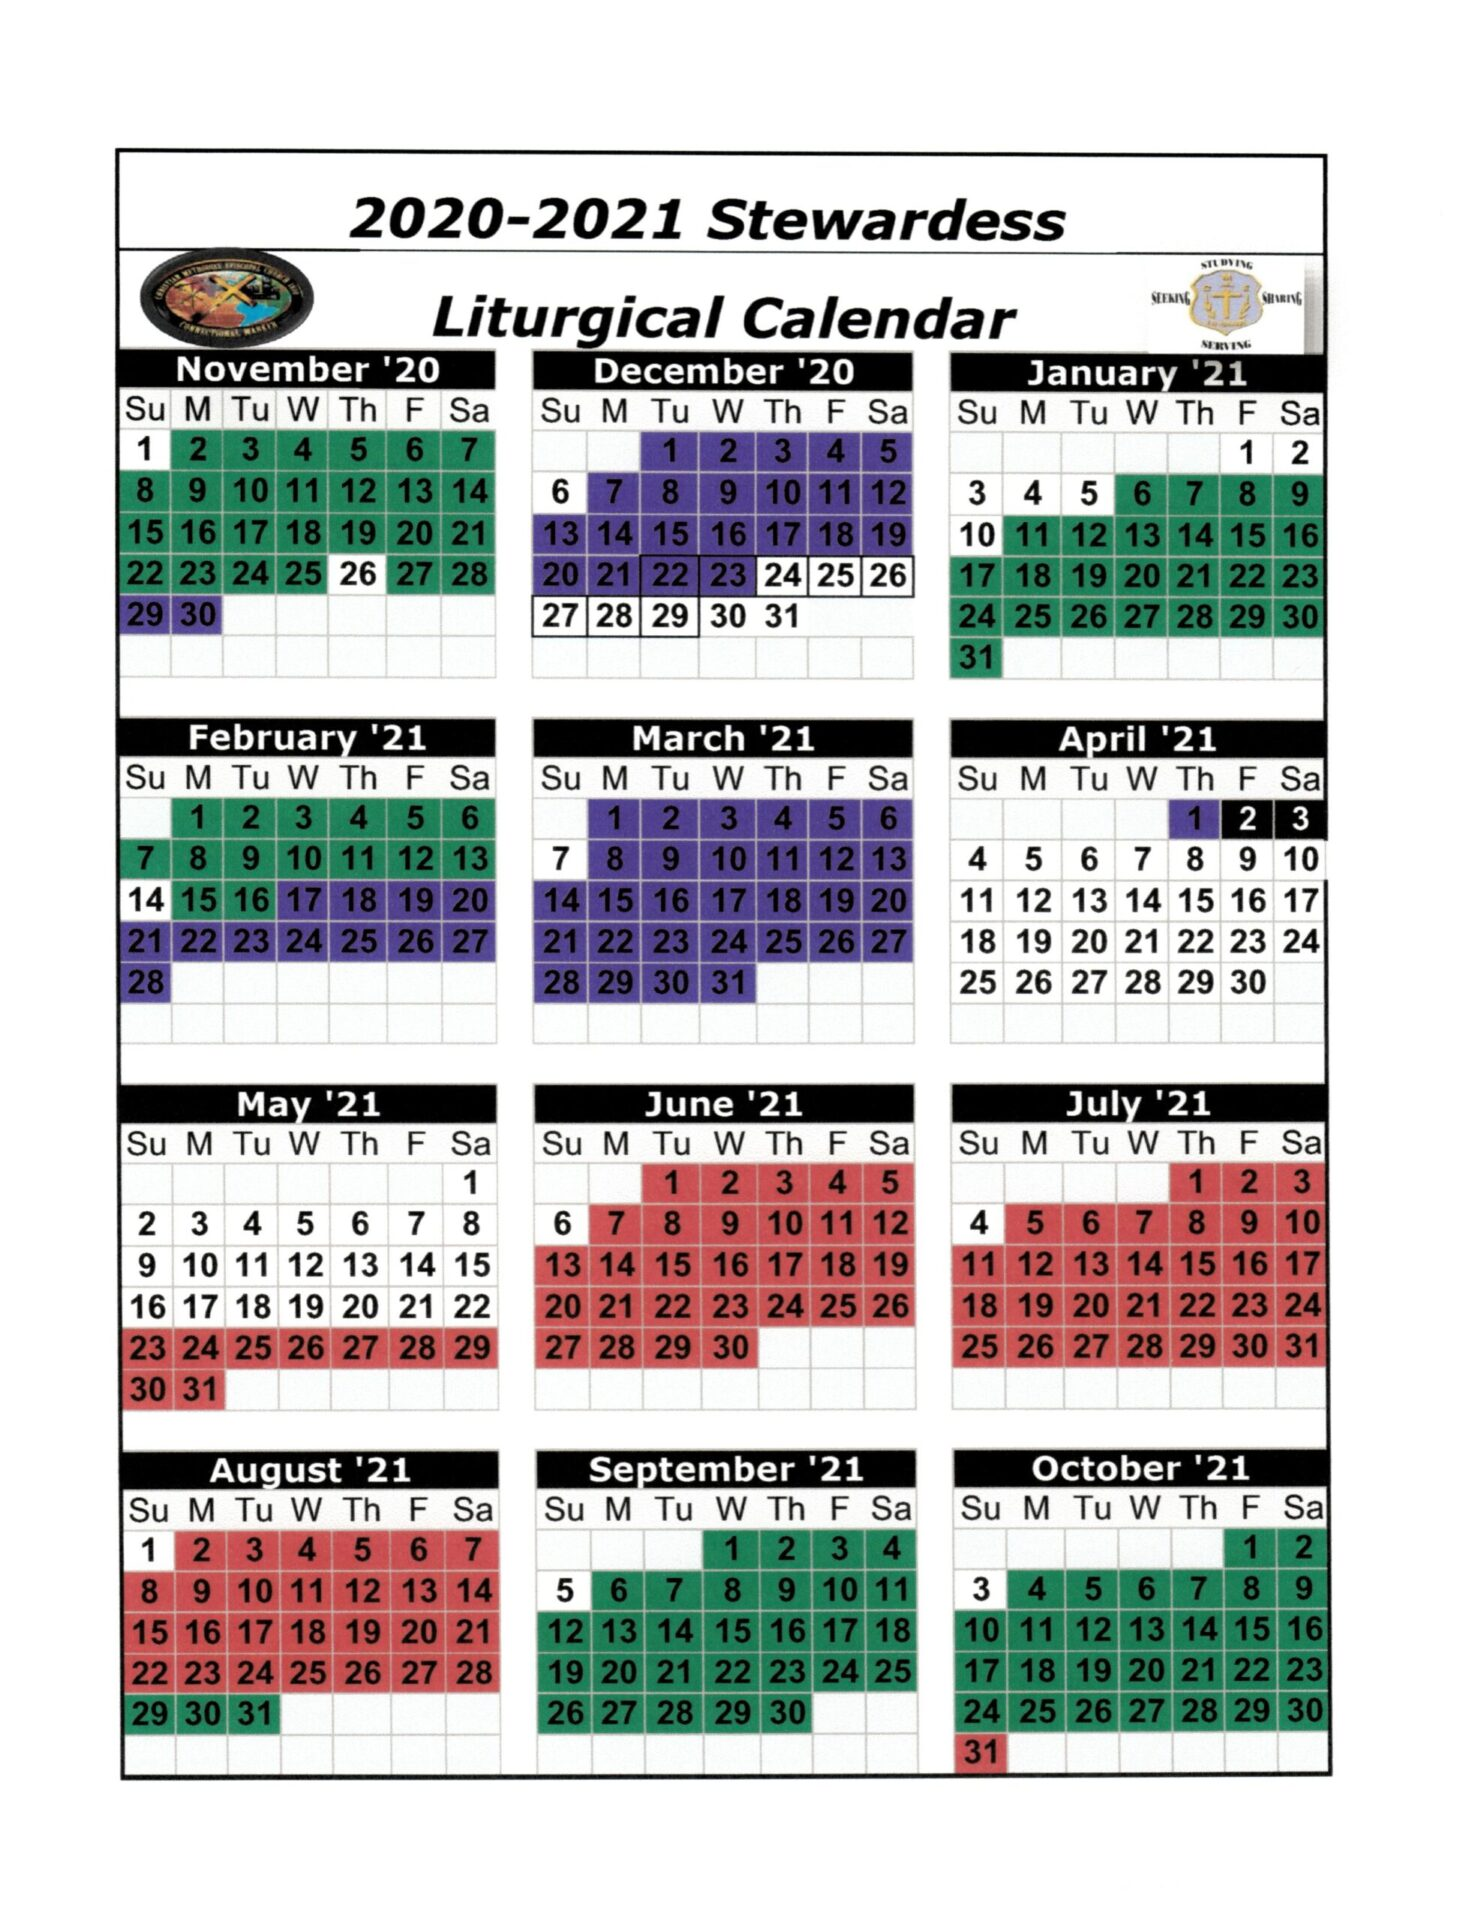 2020-2021 Stewardess Liturgical Calendar_Page_1